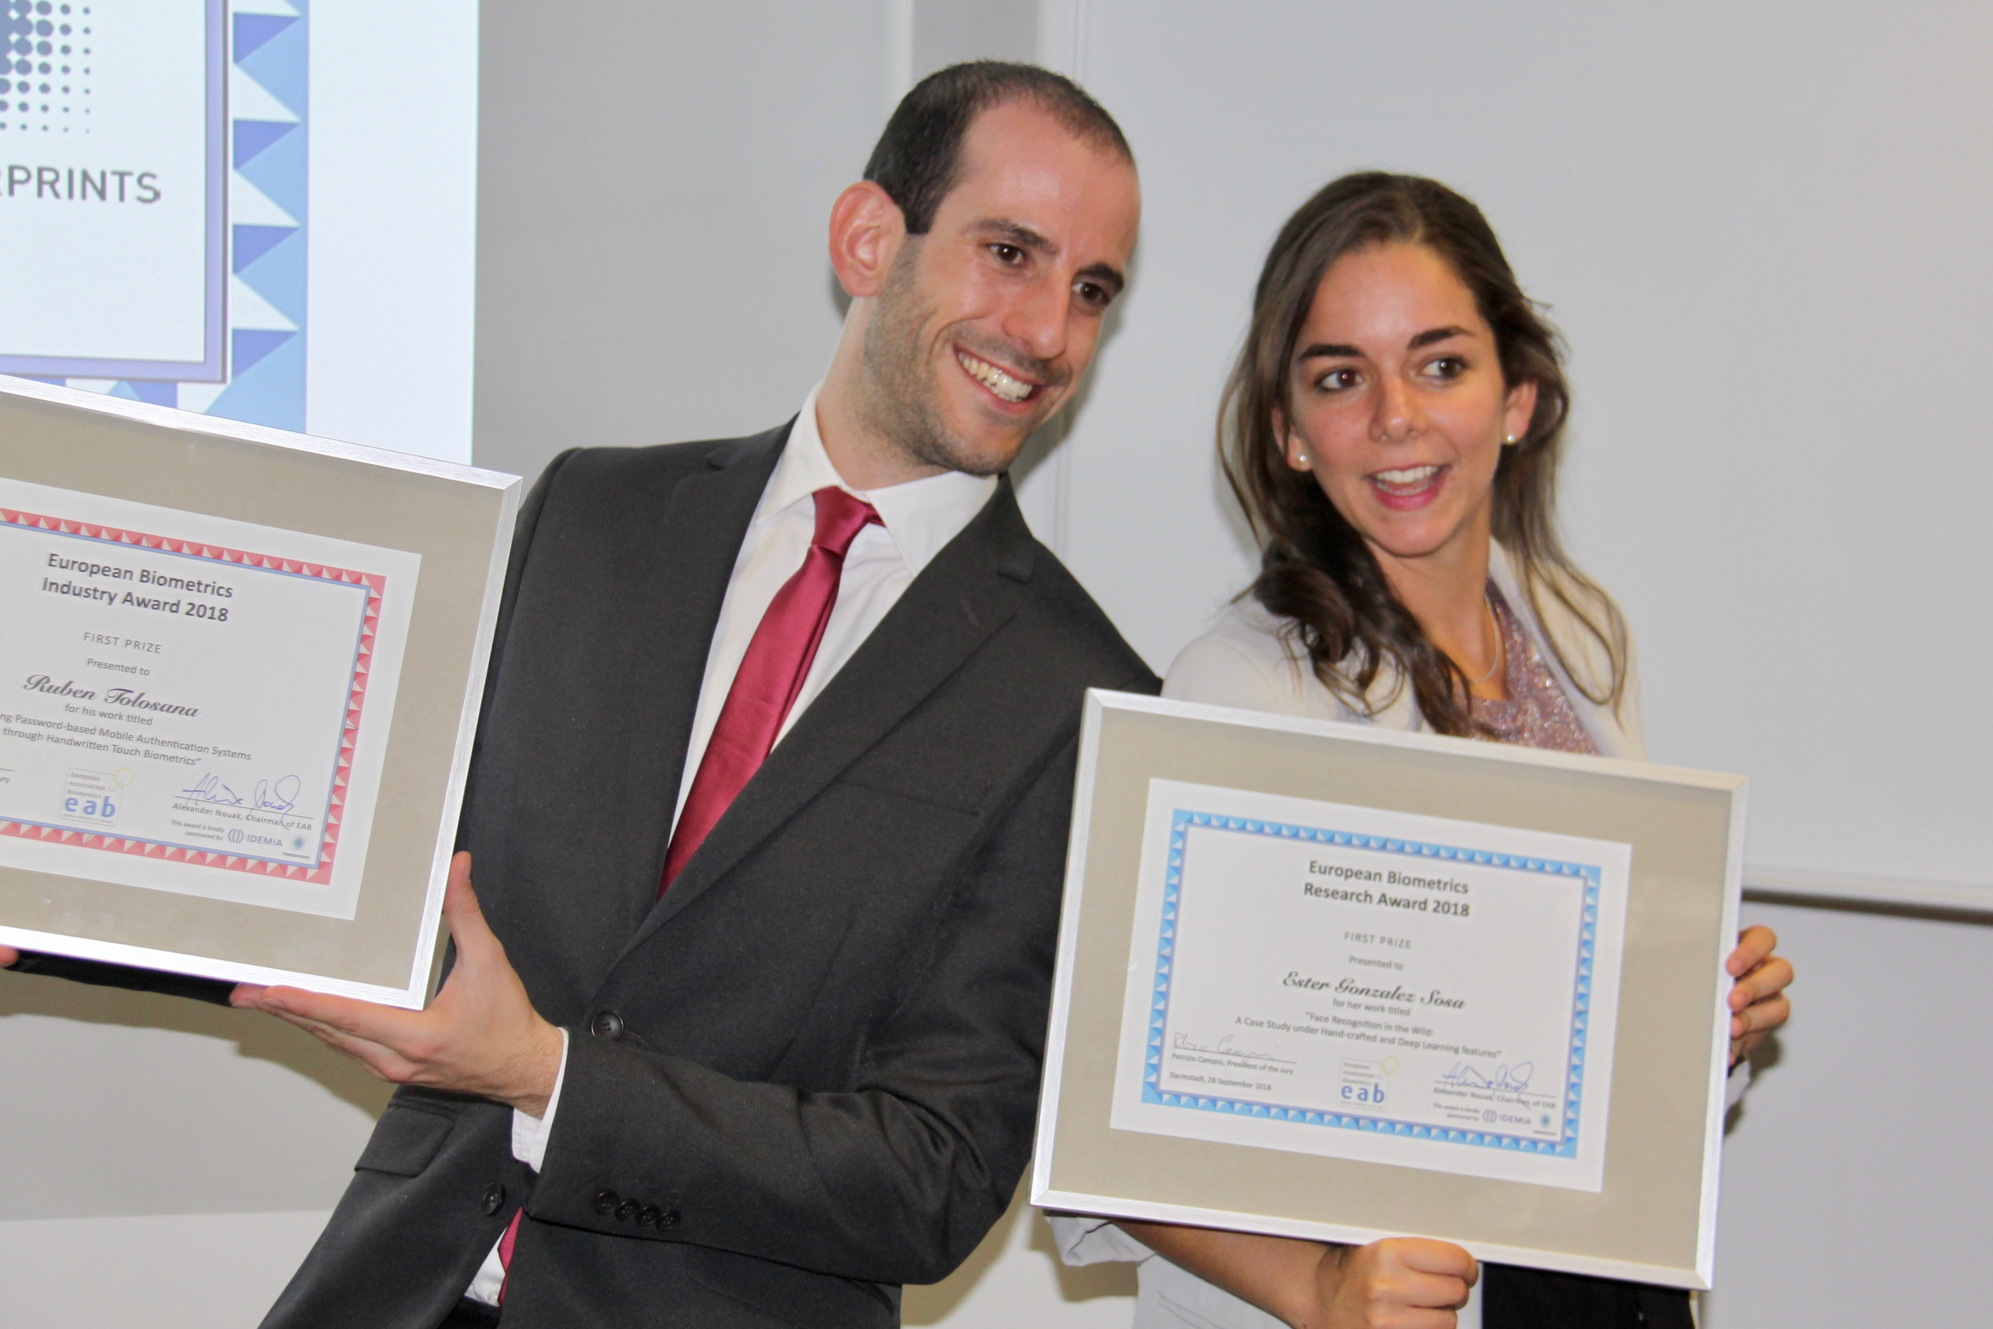 [Photo] Winner of the EAB Industry Award 2018, Ruben Tolosana, together with the winner of the EAB Research Award 2018, Ester Gonzalez